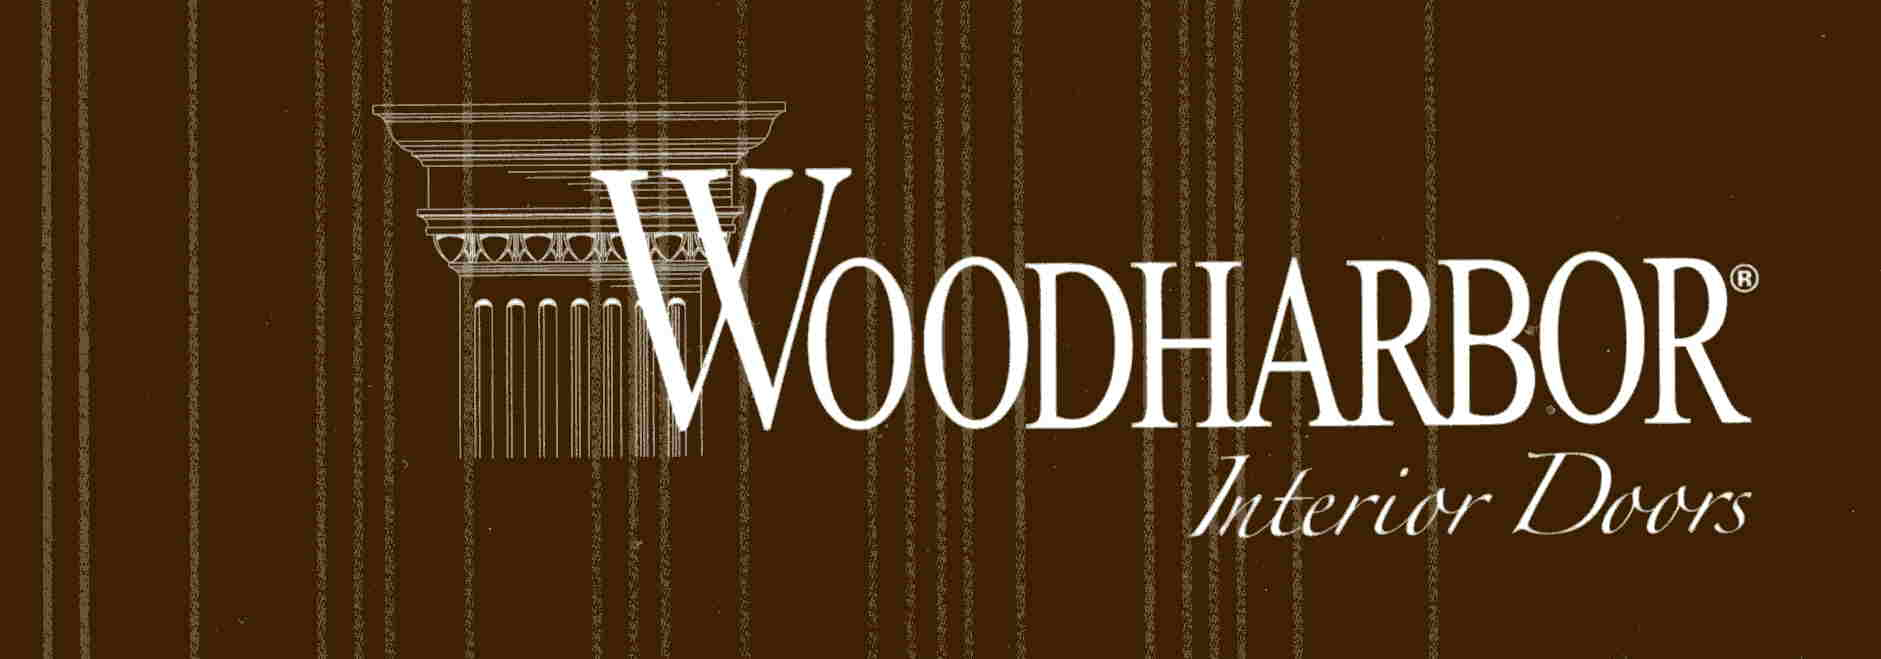 woodharbor-logo.jpg